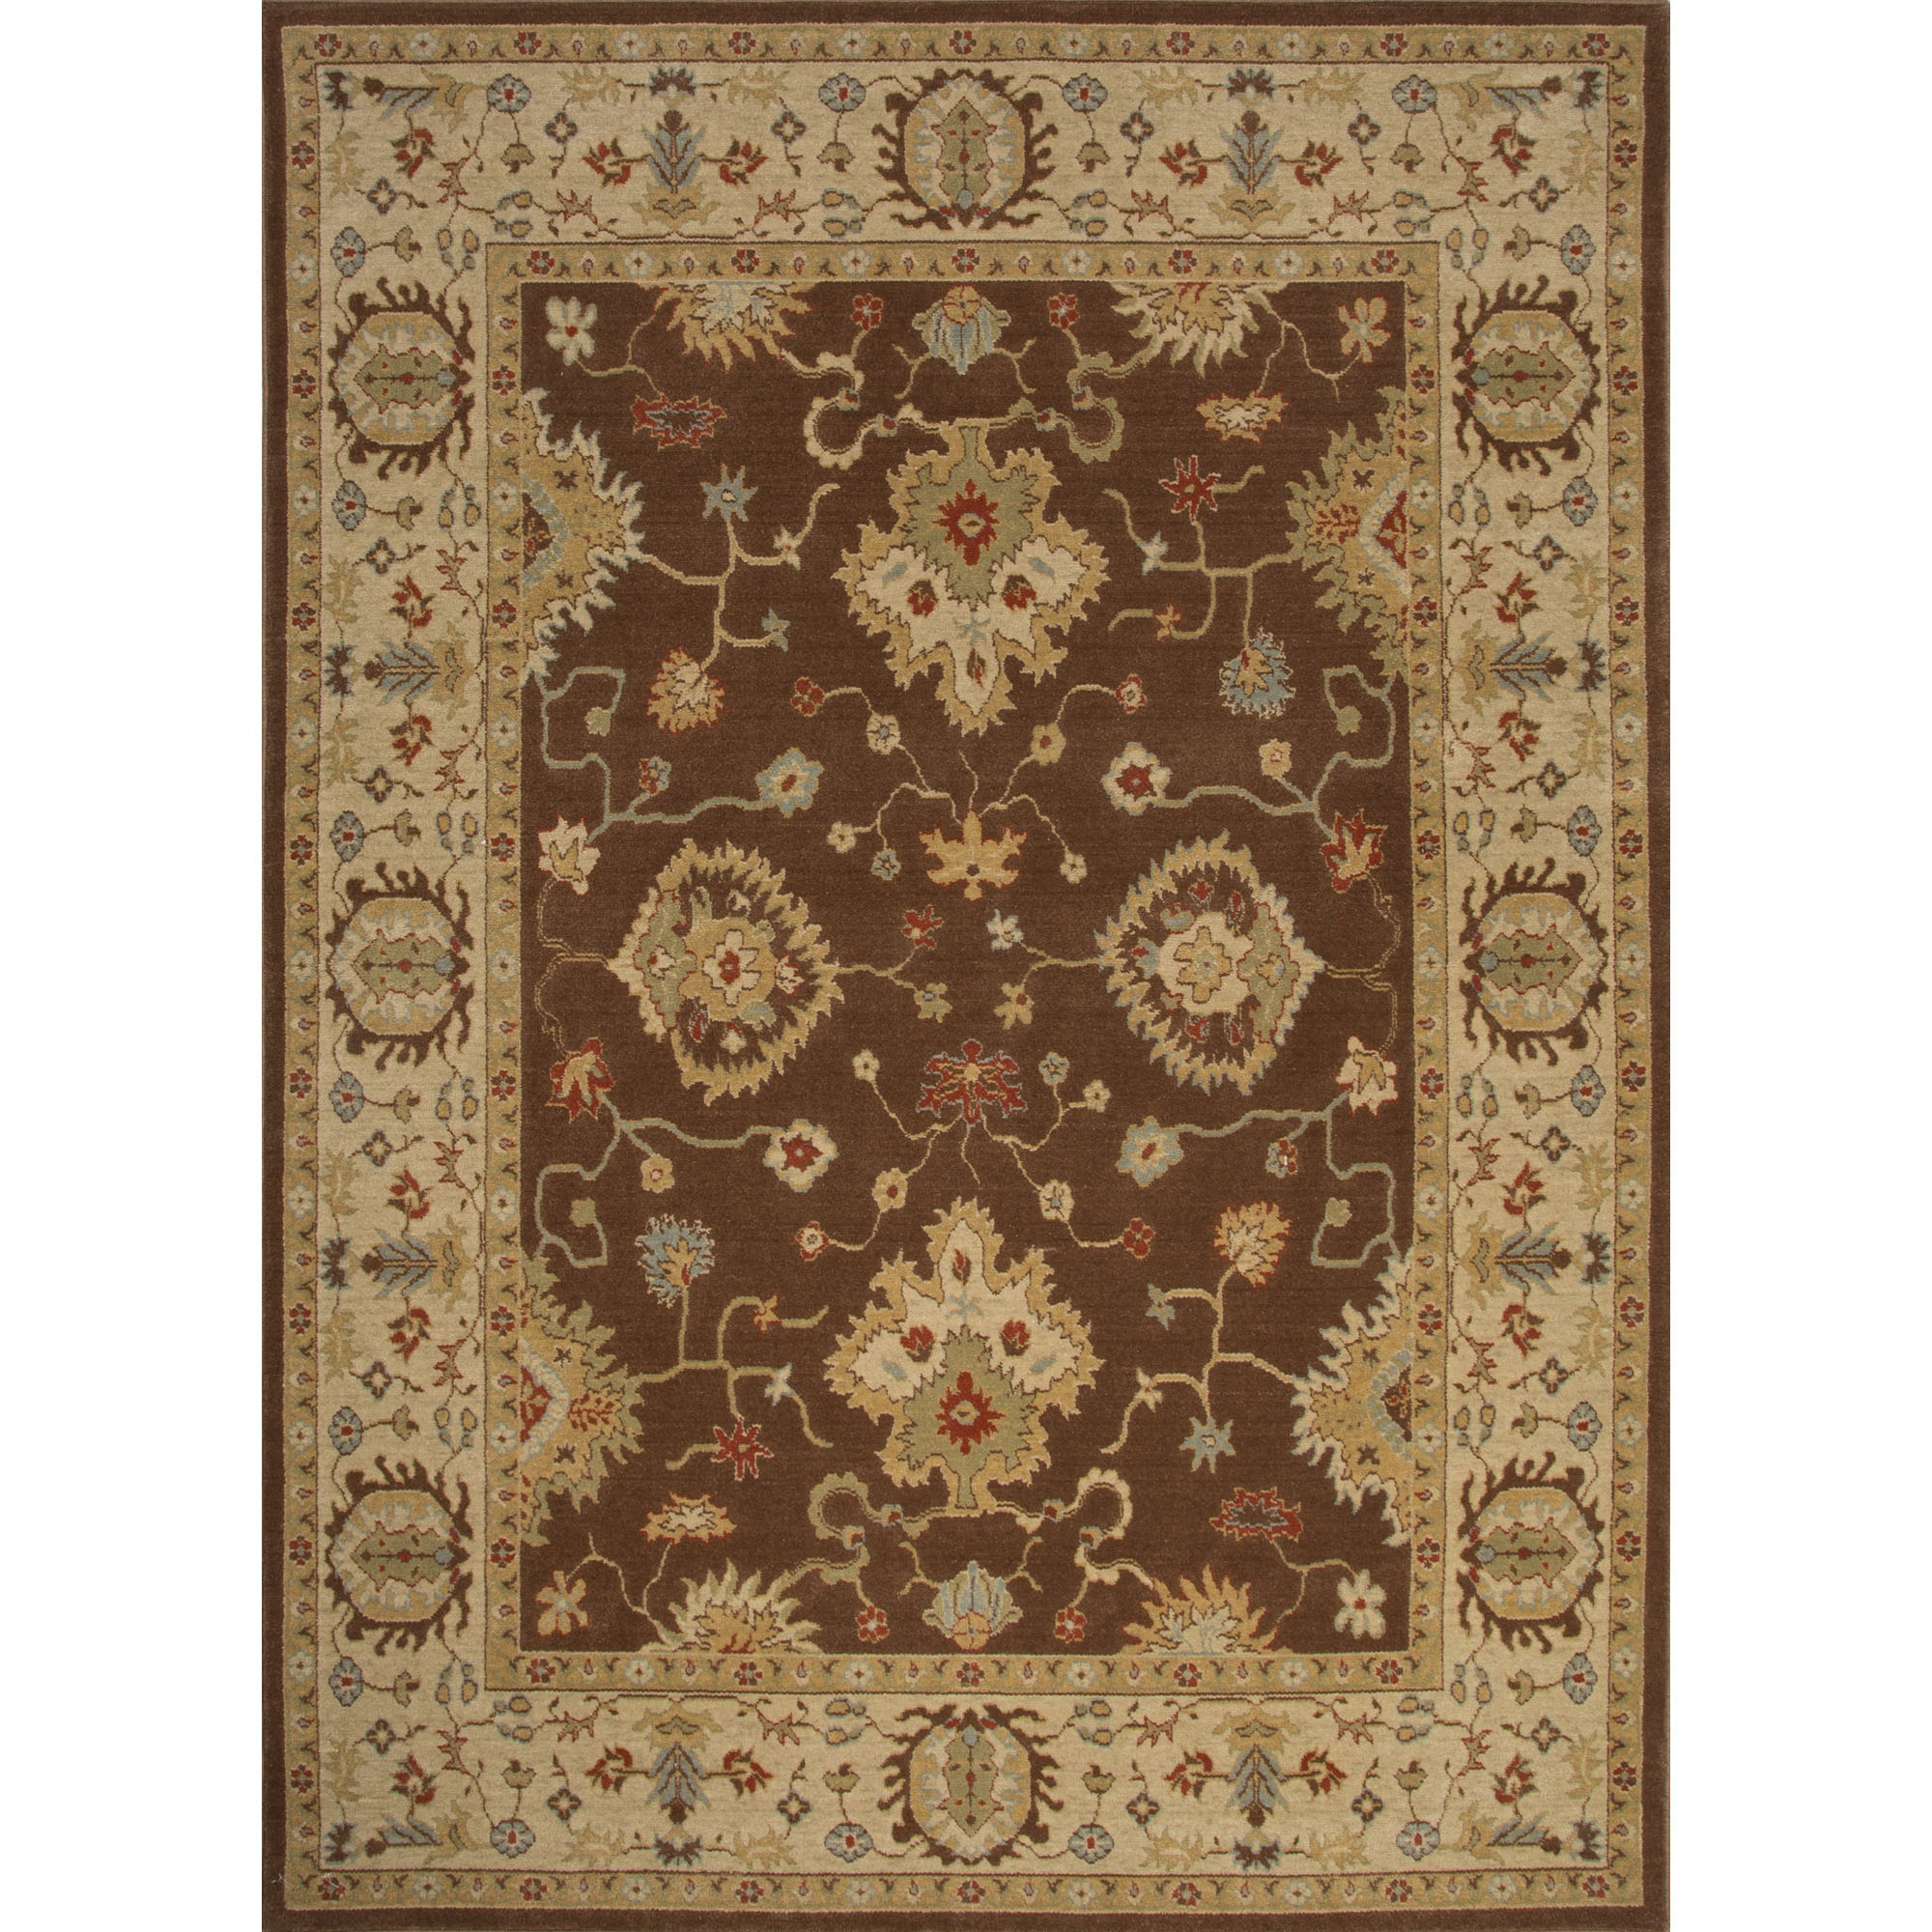 Orient 2 x 3 Rug by JAIPUR Living at Sprintz Furniture